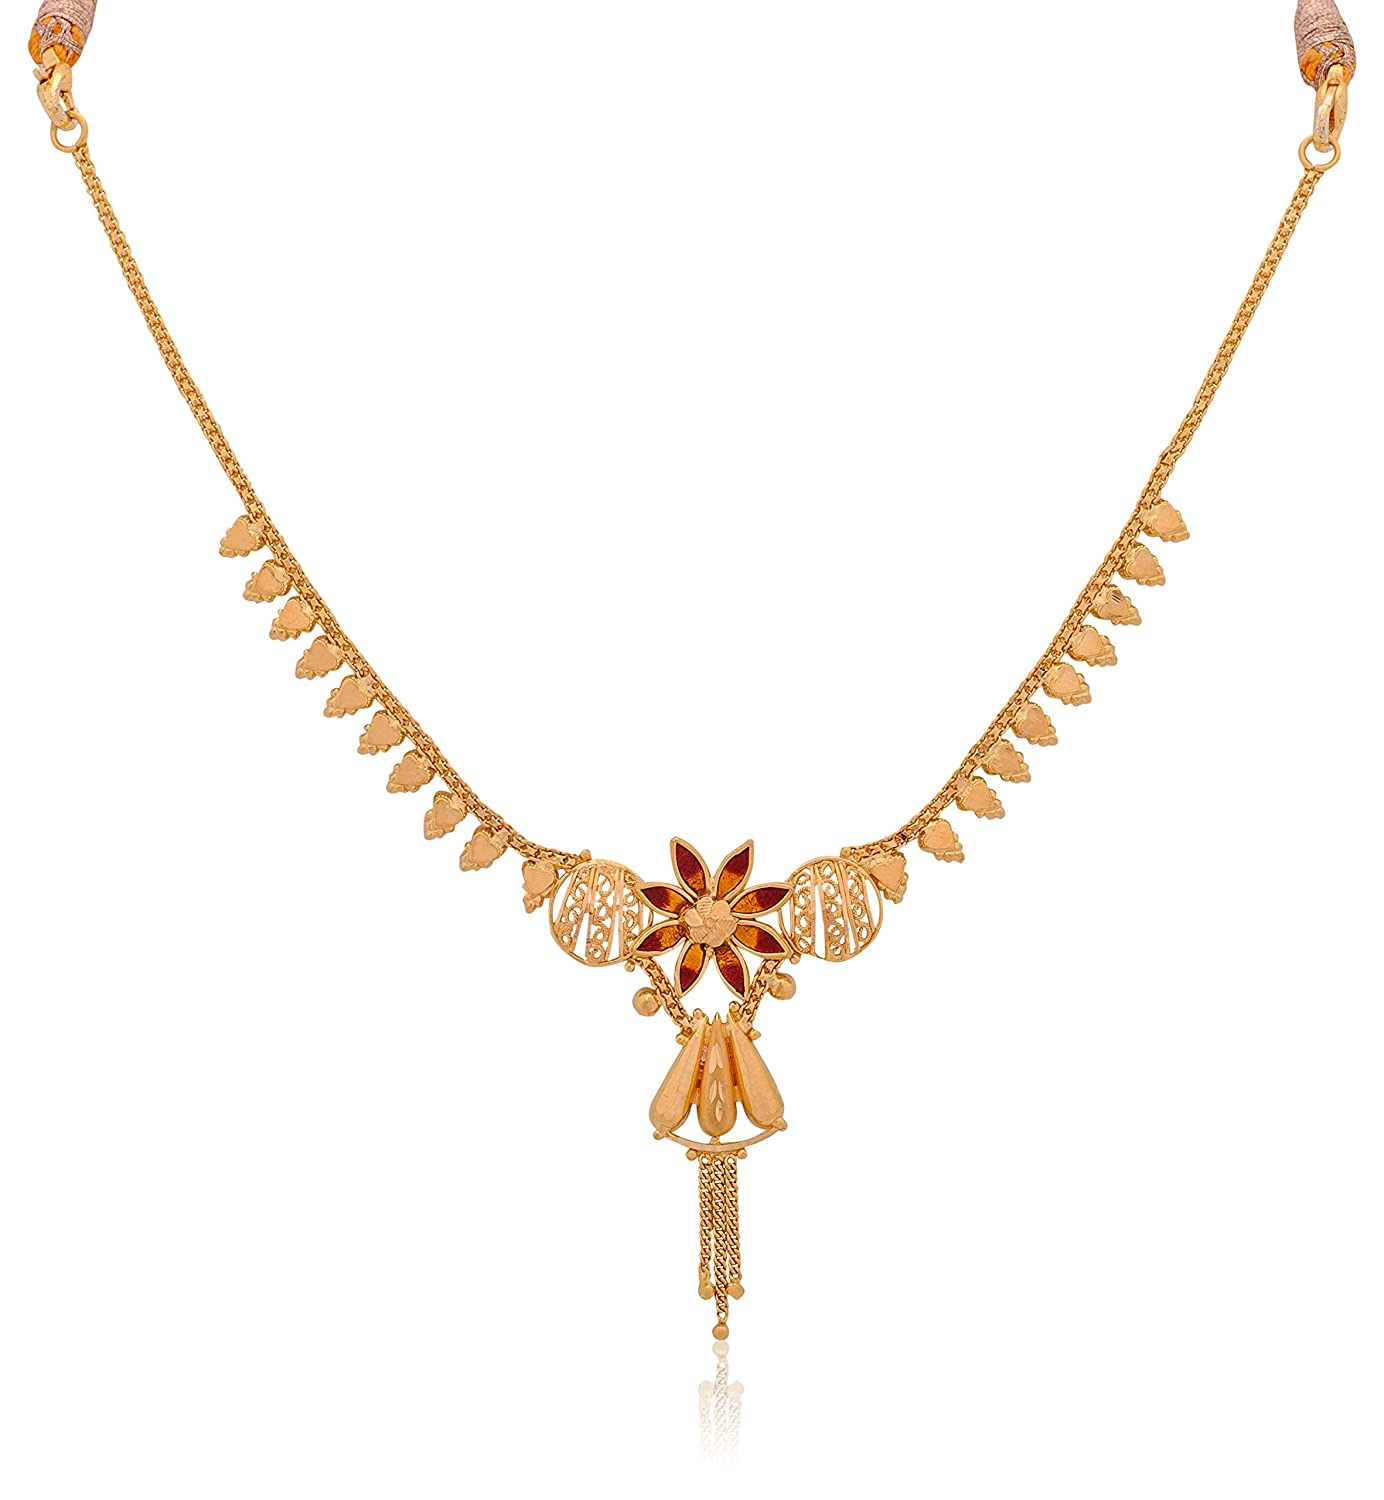 Buy Senco Gold 22k Yellow Gold Multi-Strand Necklace Online at Low ...